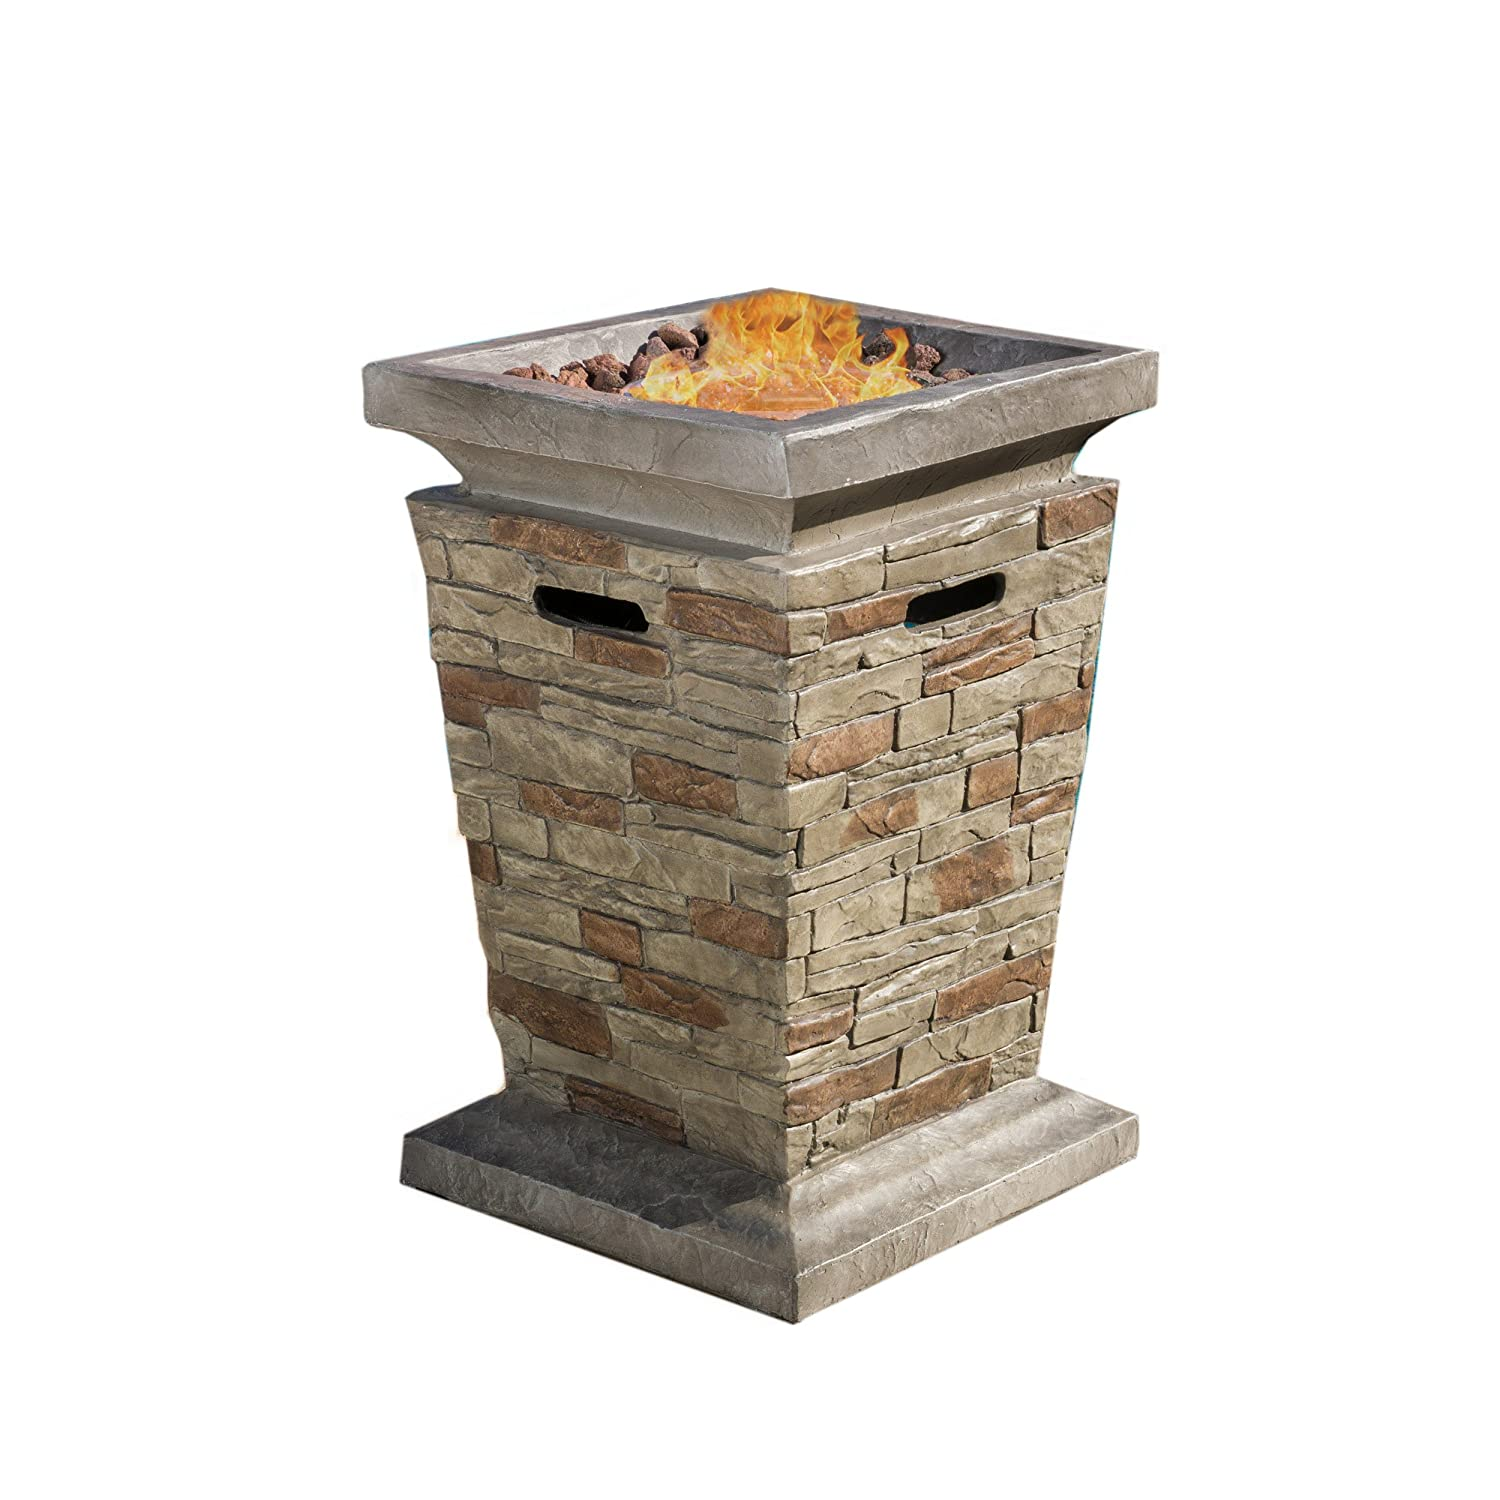 Christopher Knight Home 296656 Coldwater Outdoor 19 Liquid Propane Fire Column, Natural Stone